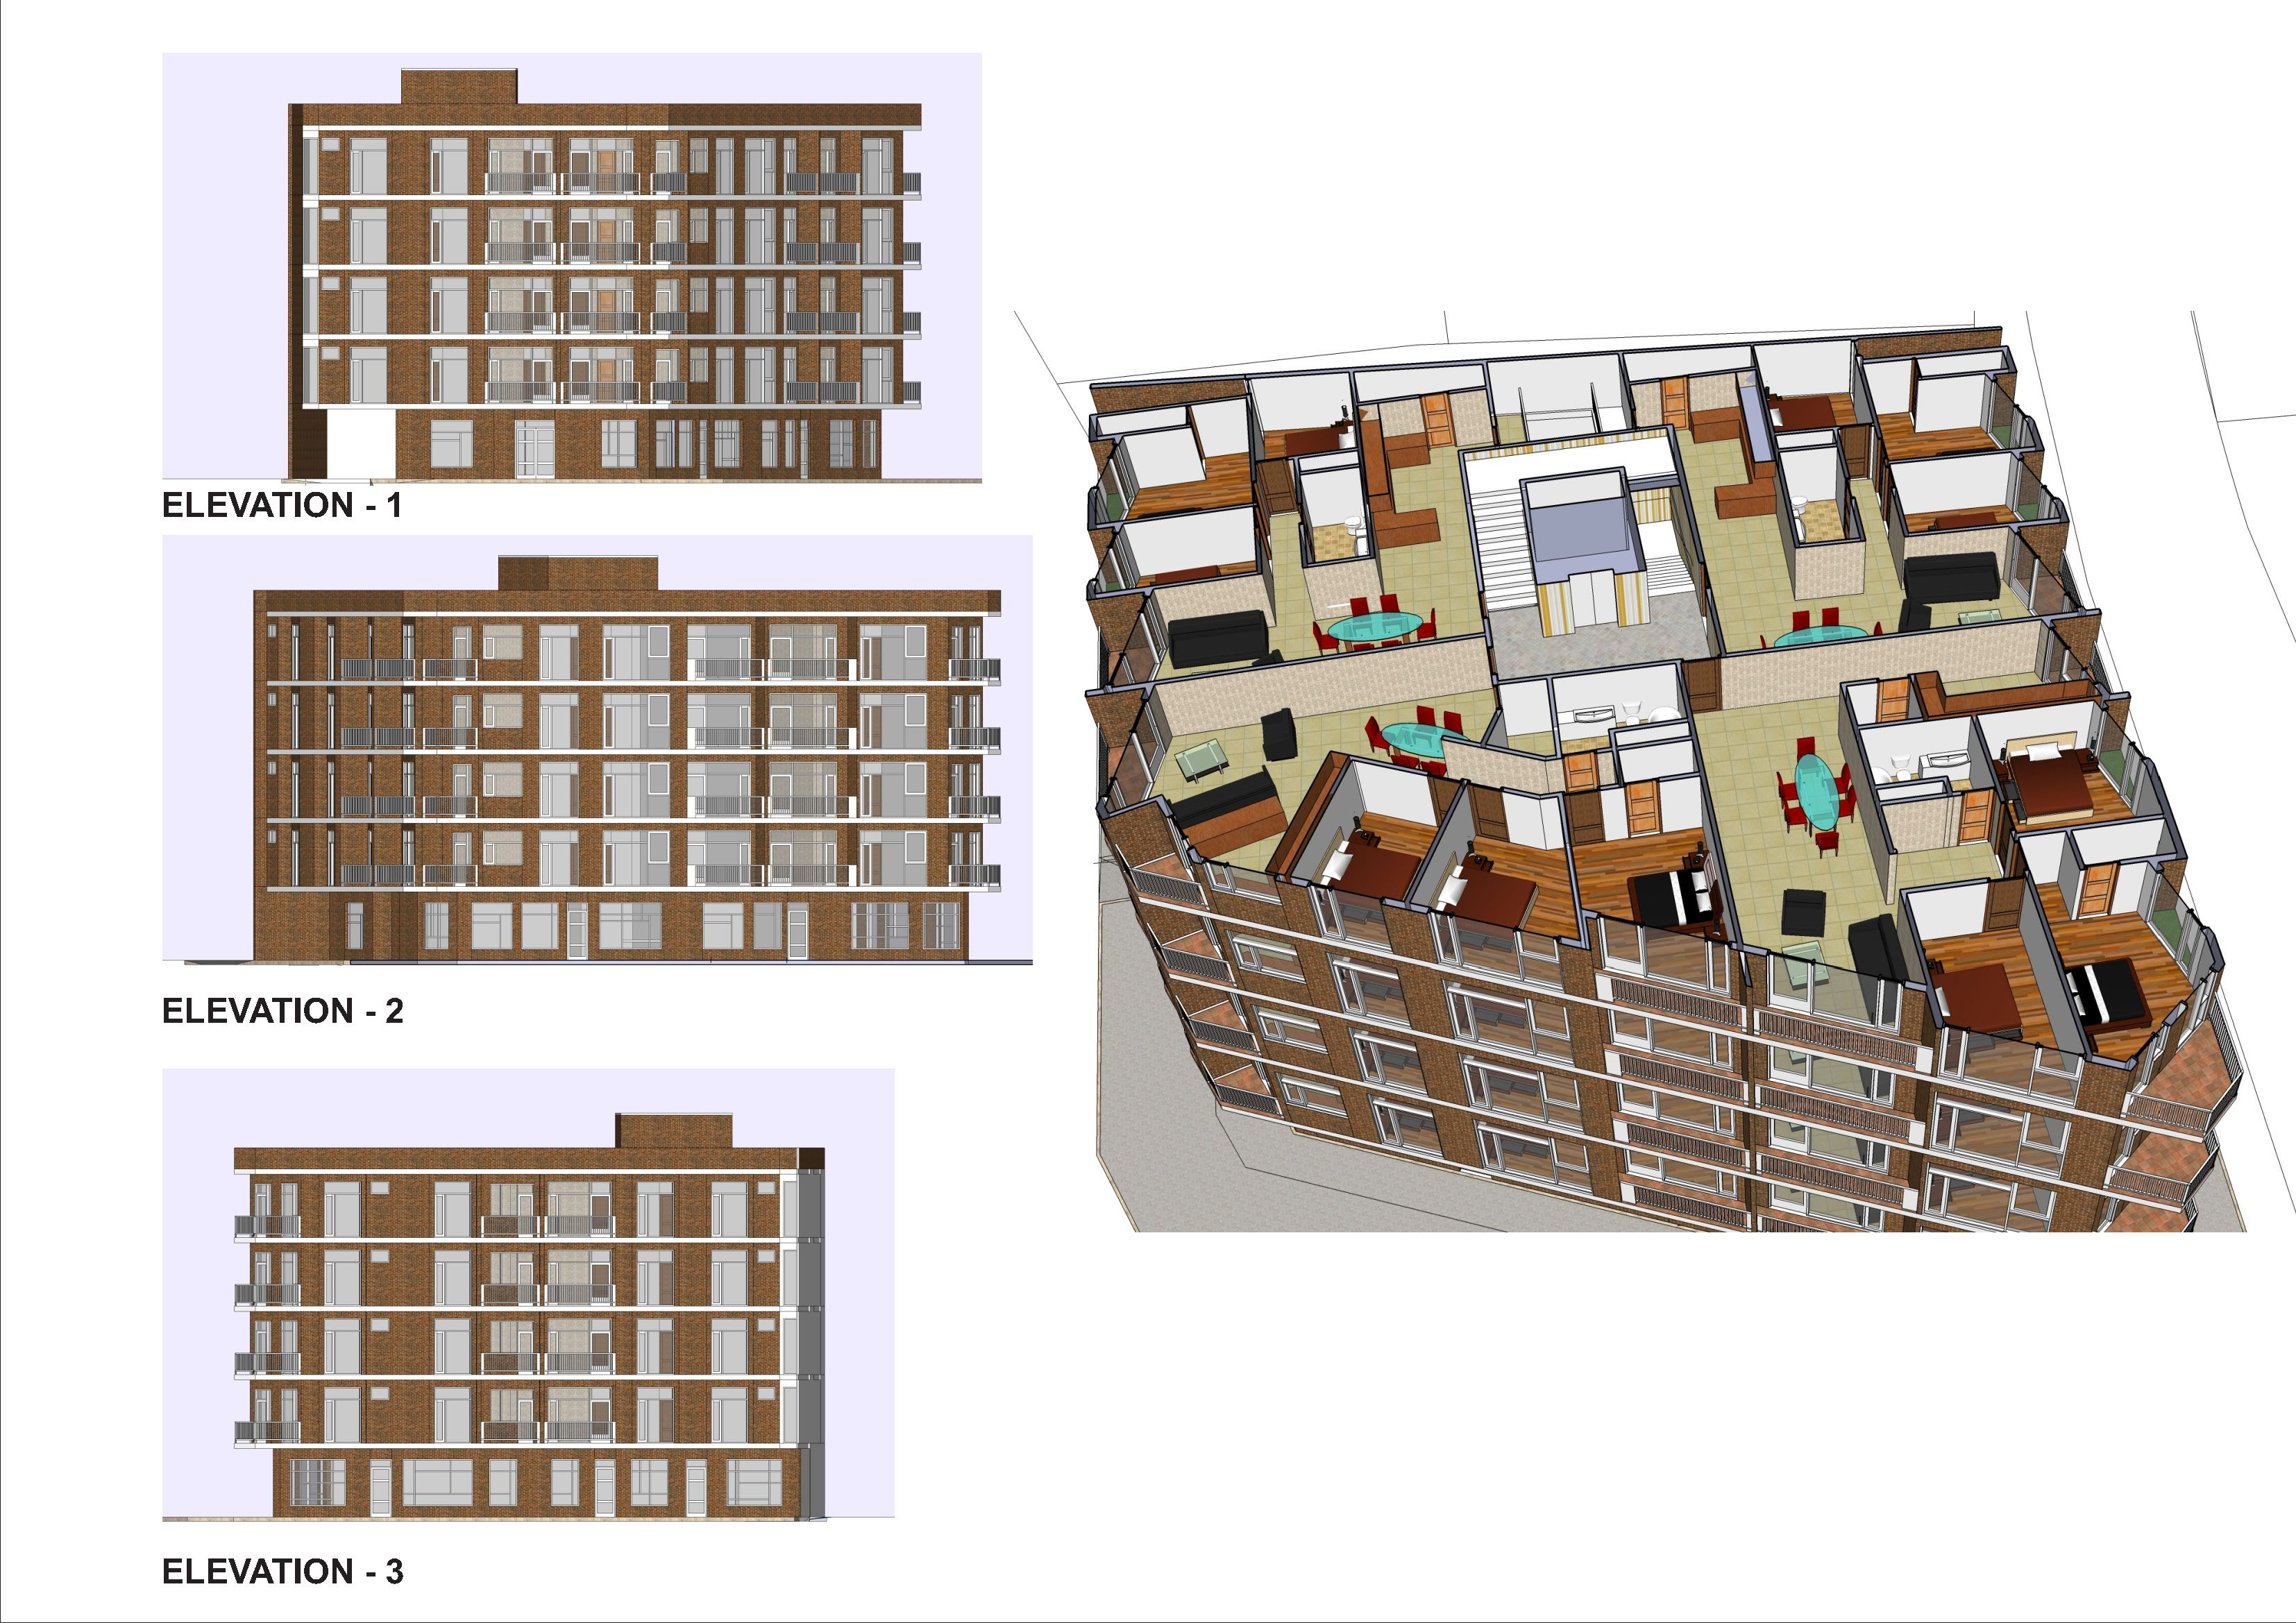 Exceptionnel Apartment Building Plans | Location: Aksaray, Turkey New Residential / Apartment  Building Plans